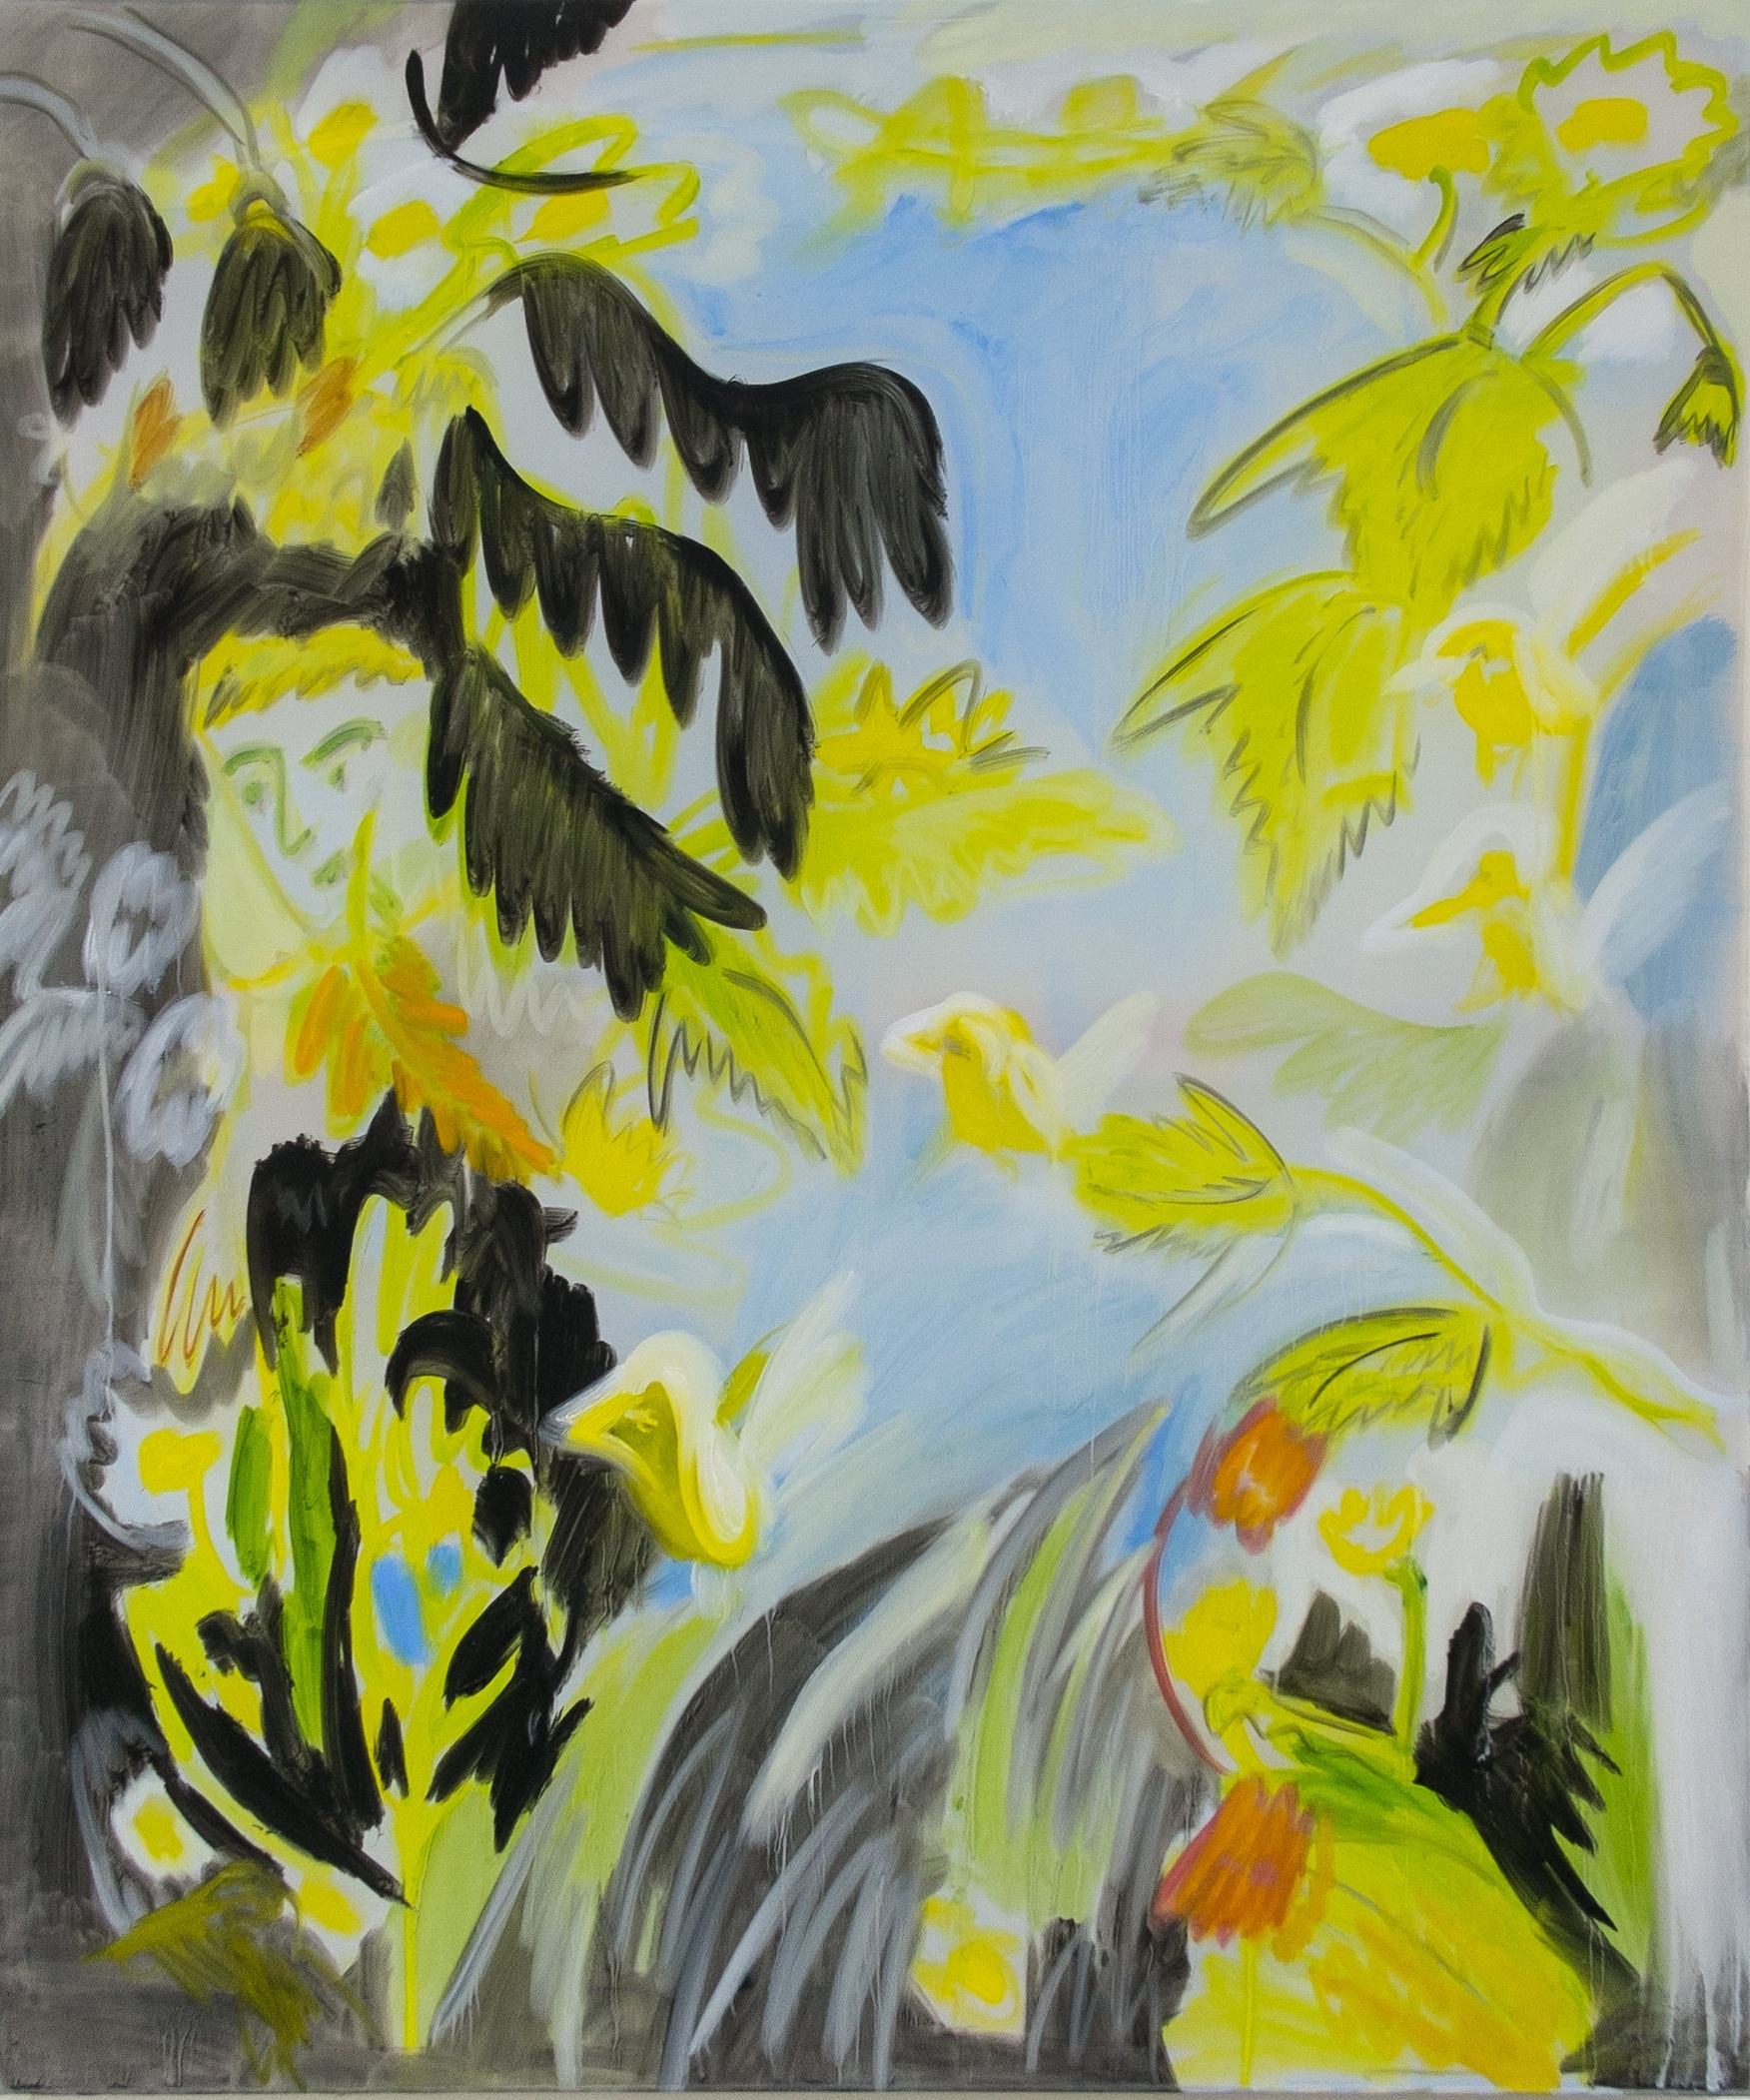 4 Birds, Hiding In The Bushes  106 x 90 cm   Oil on Transparent Fabric